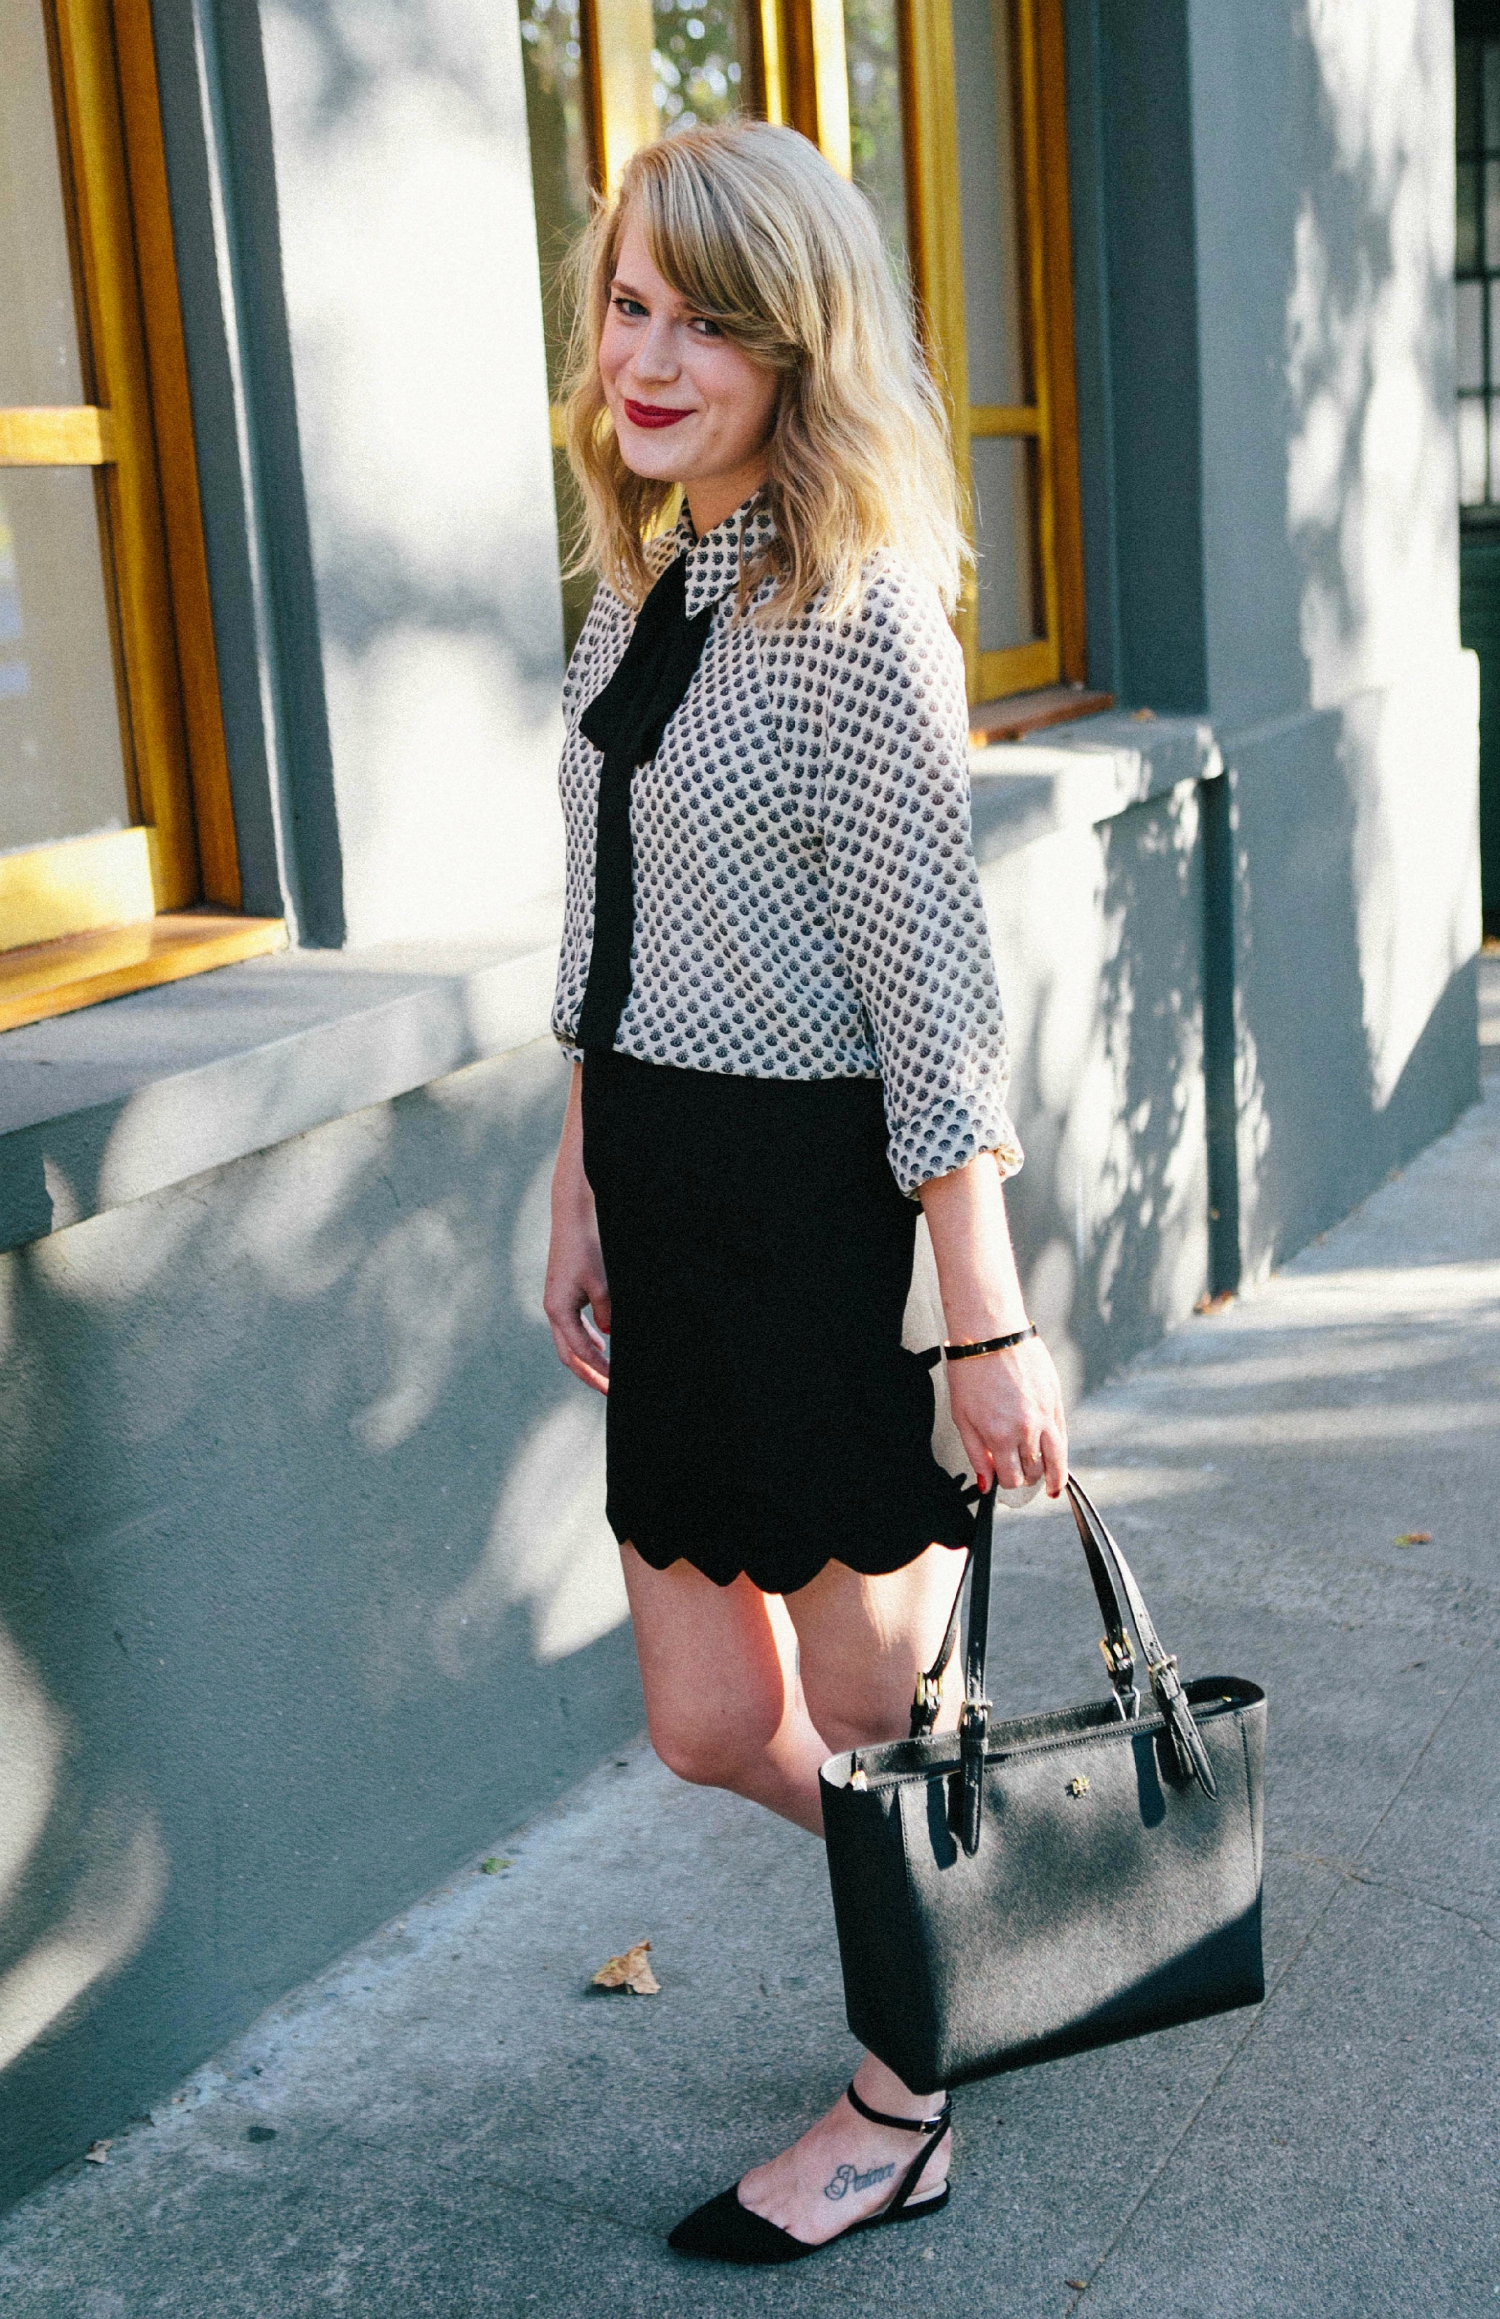 Work Outfit // Scalloped Skirt with Tie Neck Blouse.